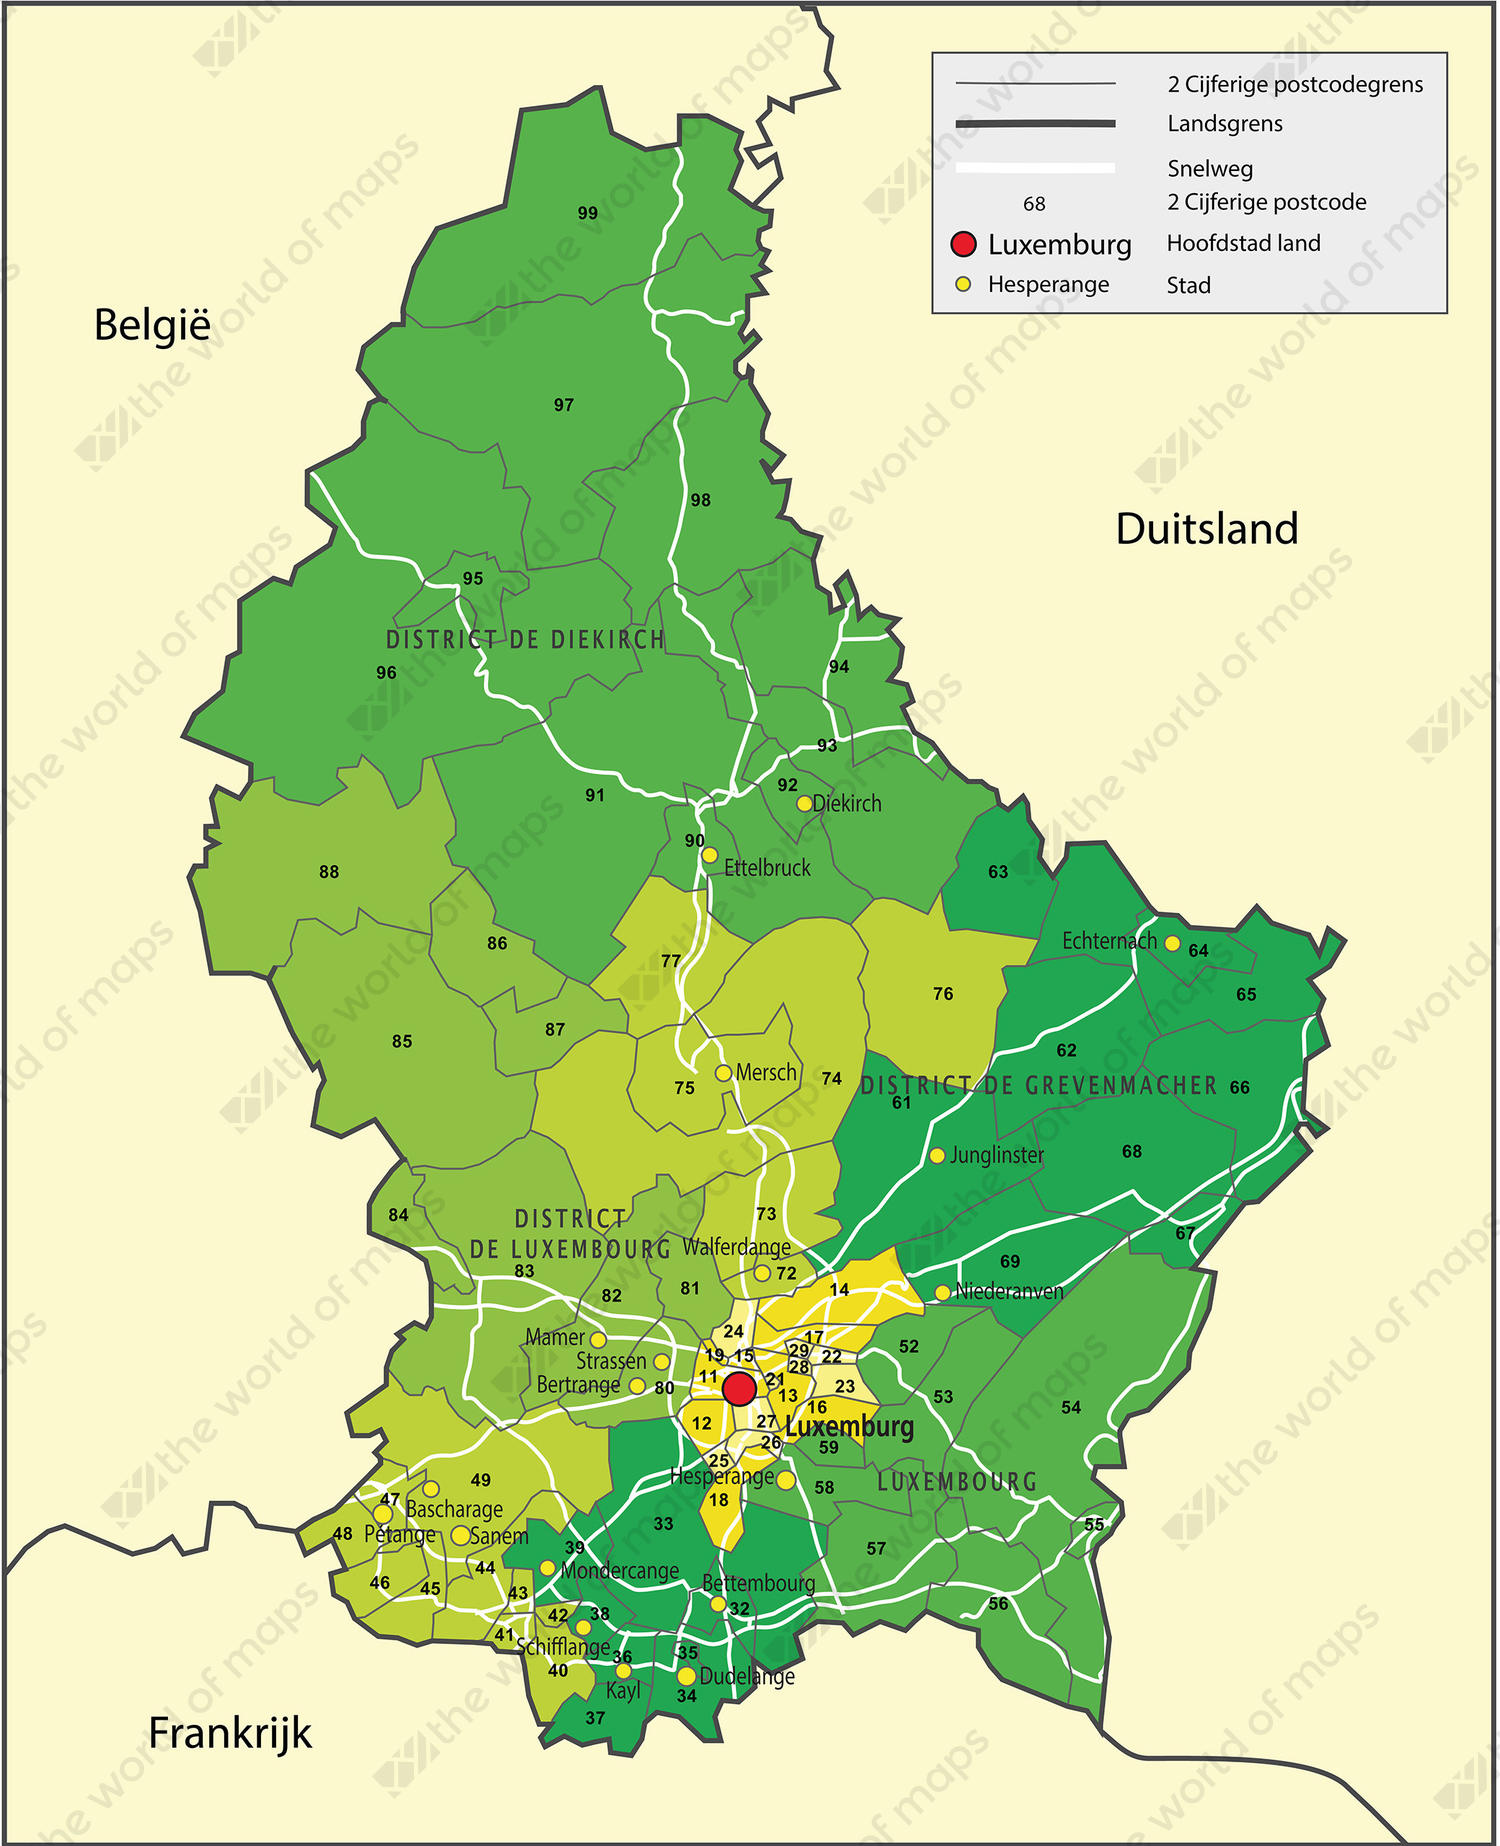 Digital ZIP Code Map Luxembourg 1319 The World of Mapscom